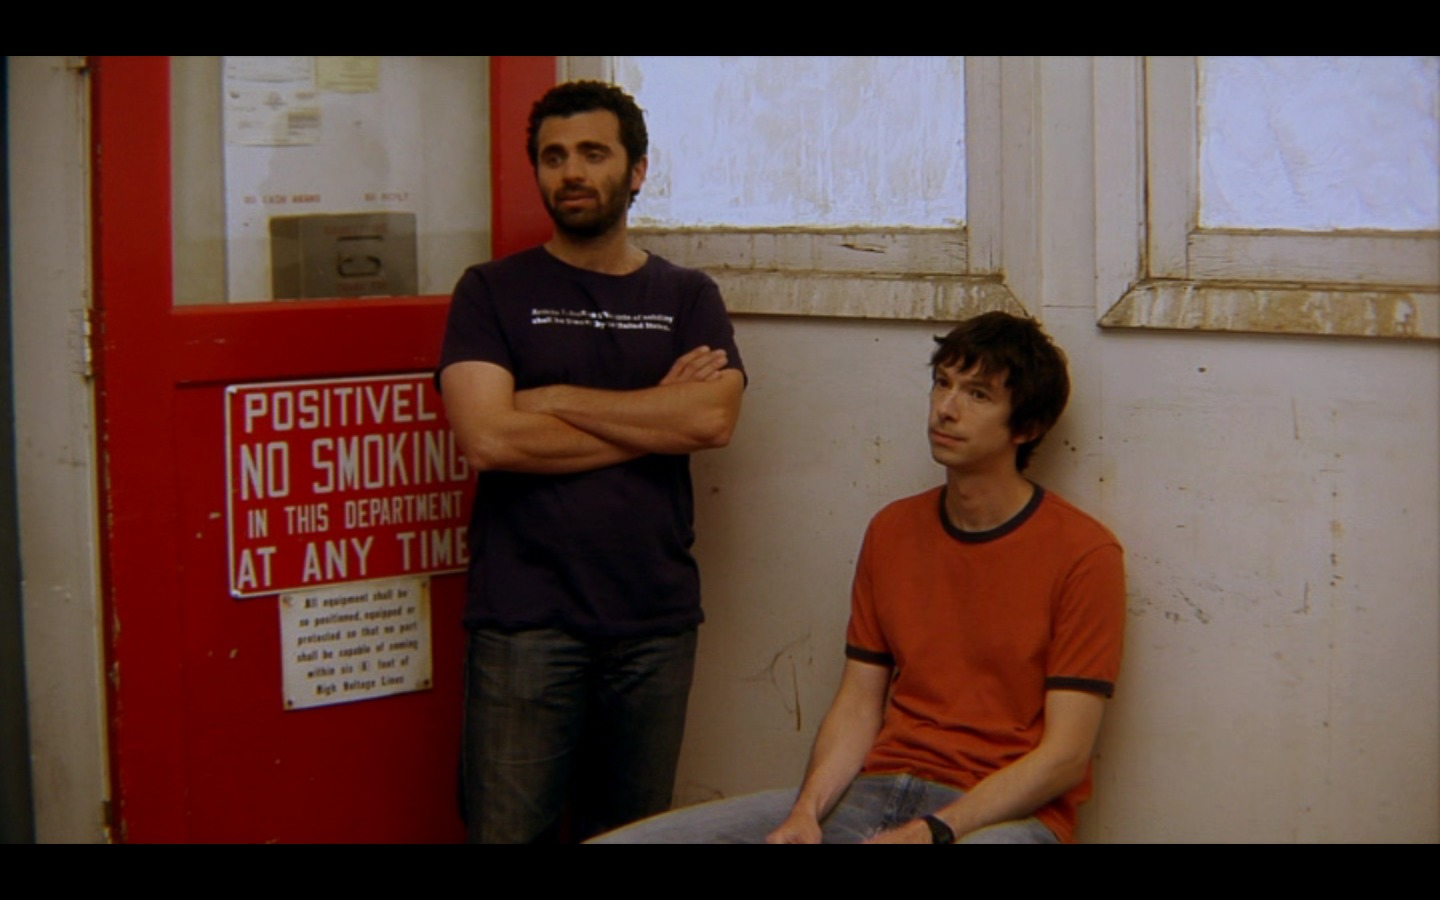 Todd Aaron Brotze as Donovan in Portable Storage, with Nicholas Massouh